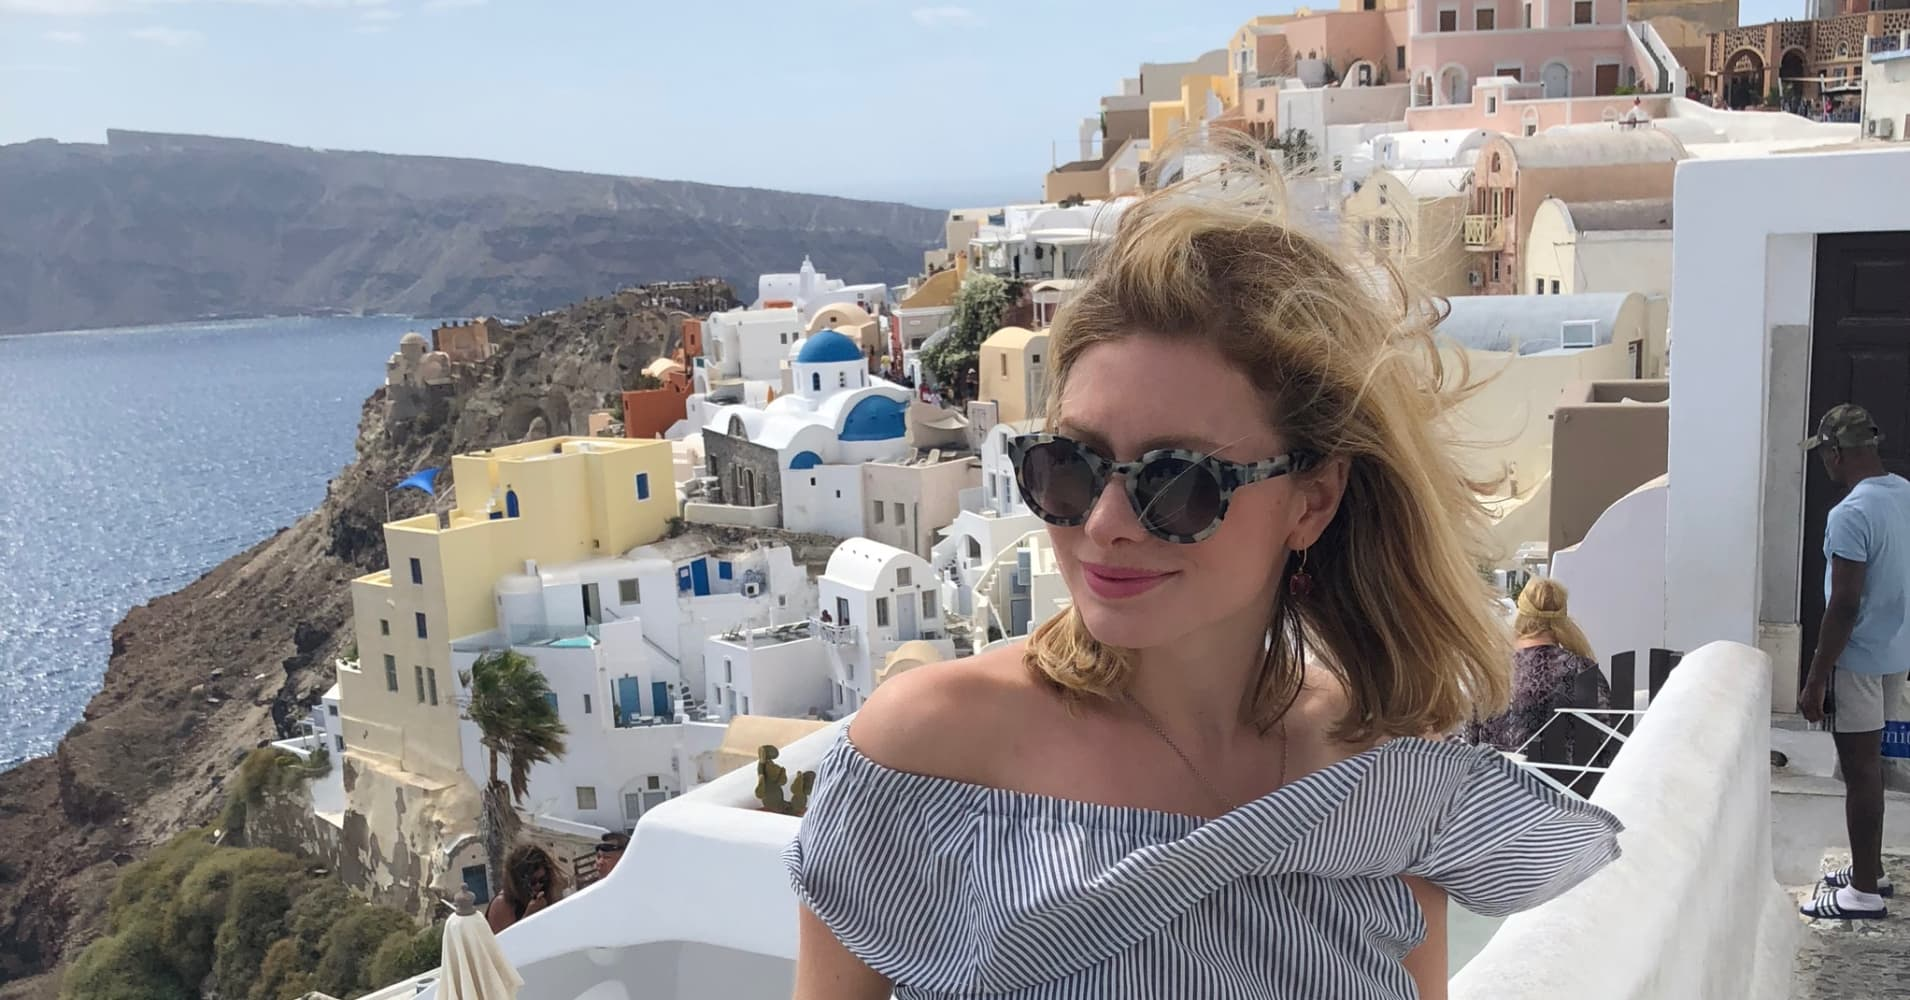 Social media detox: Christina Farr quits Instagram, Facebook